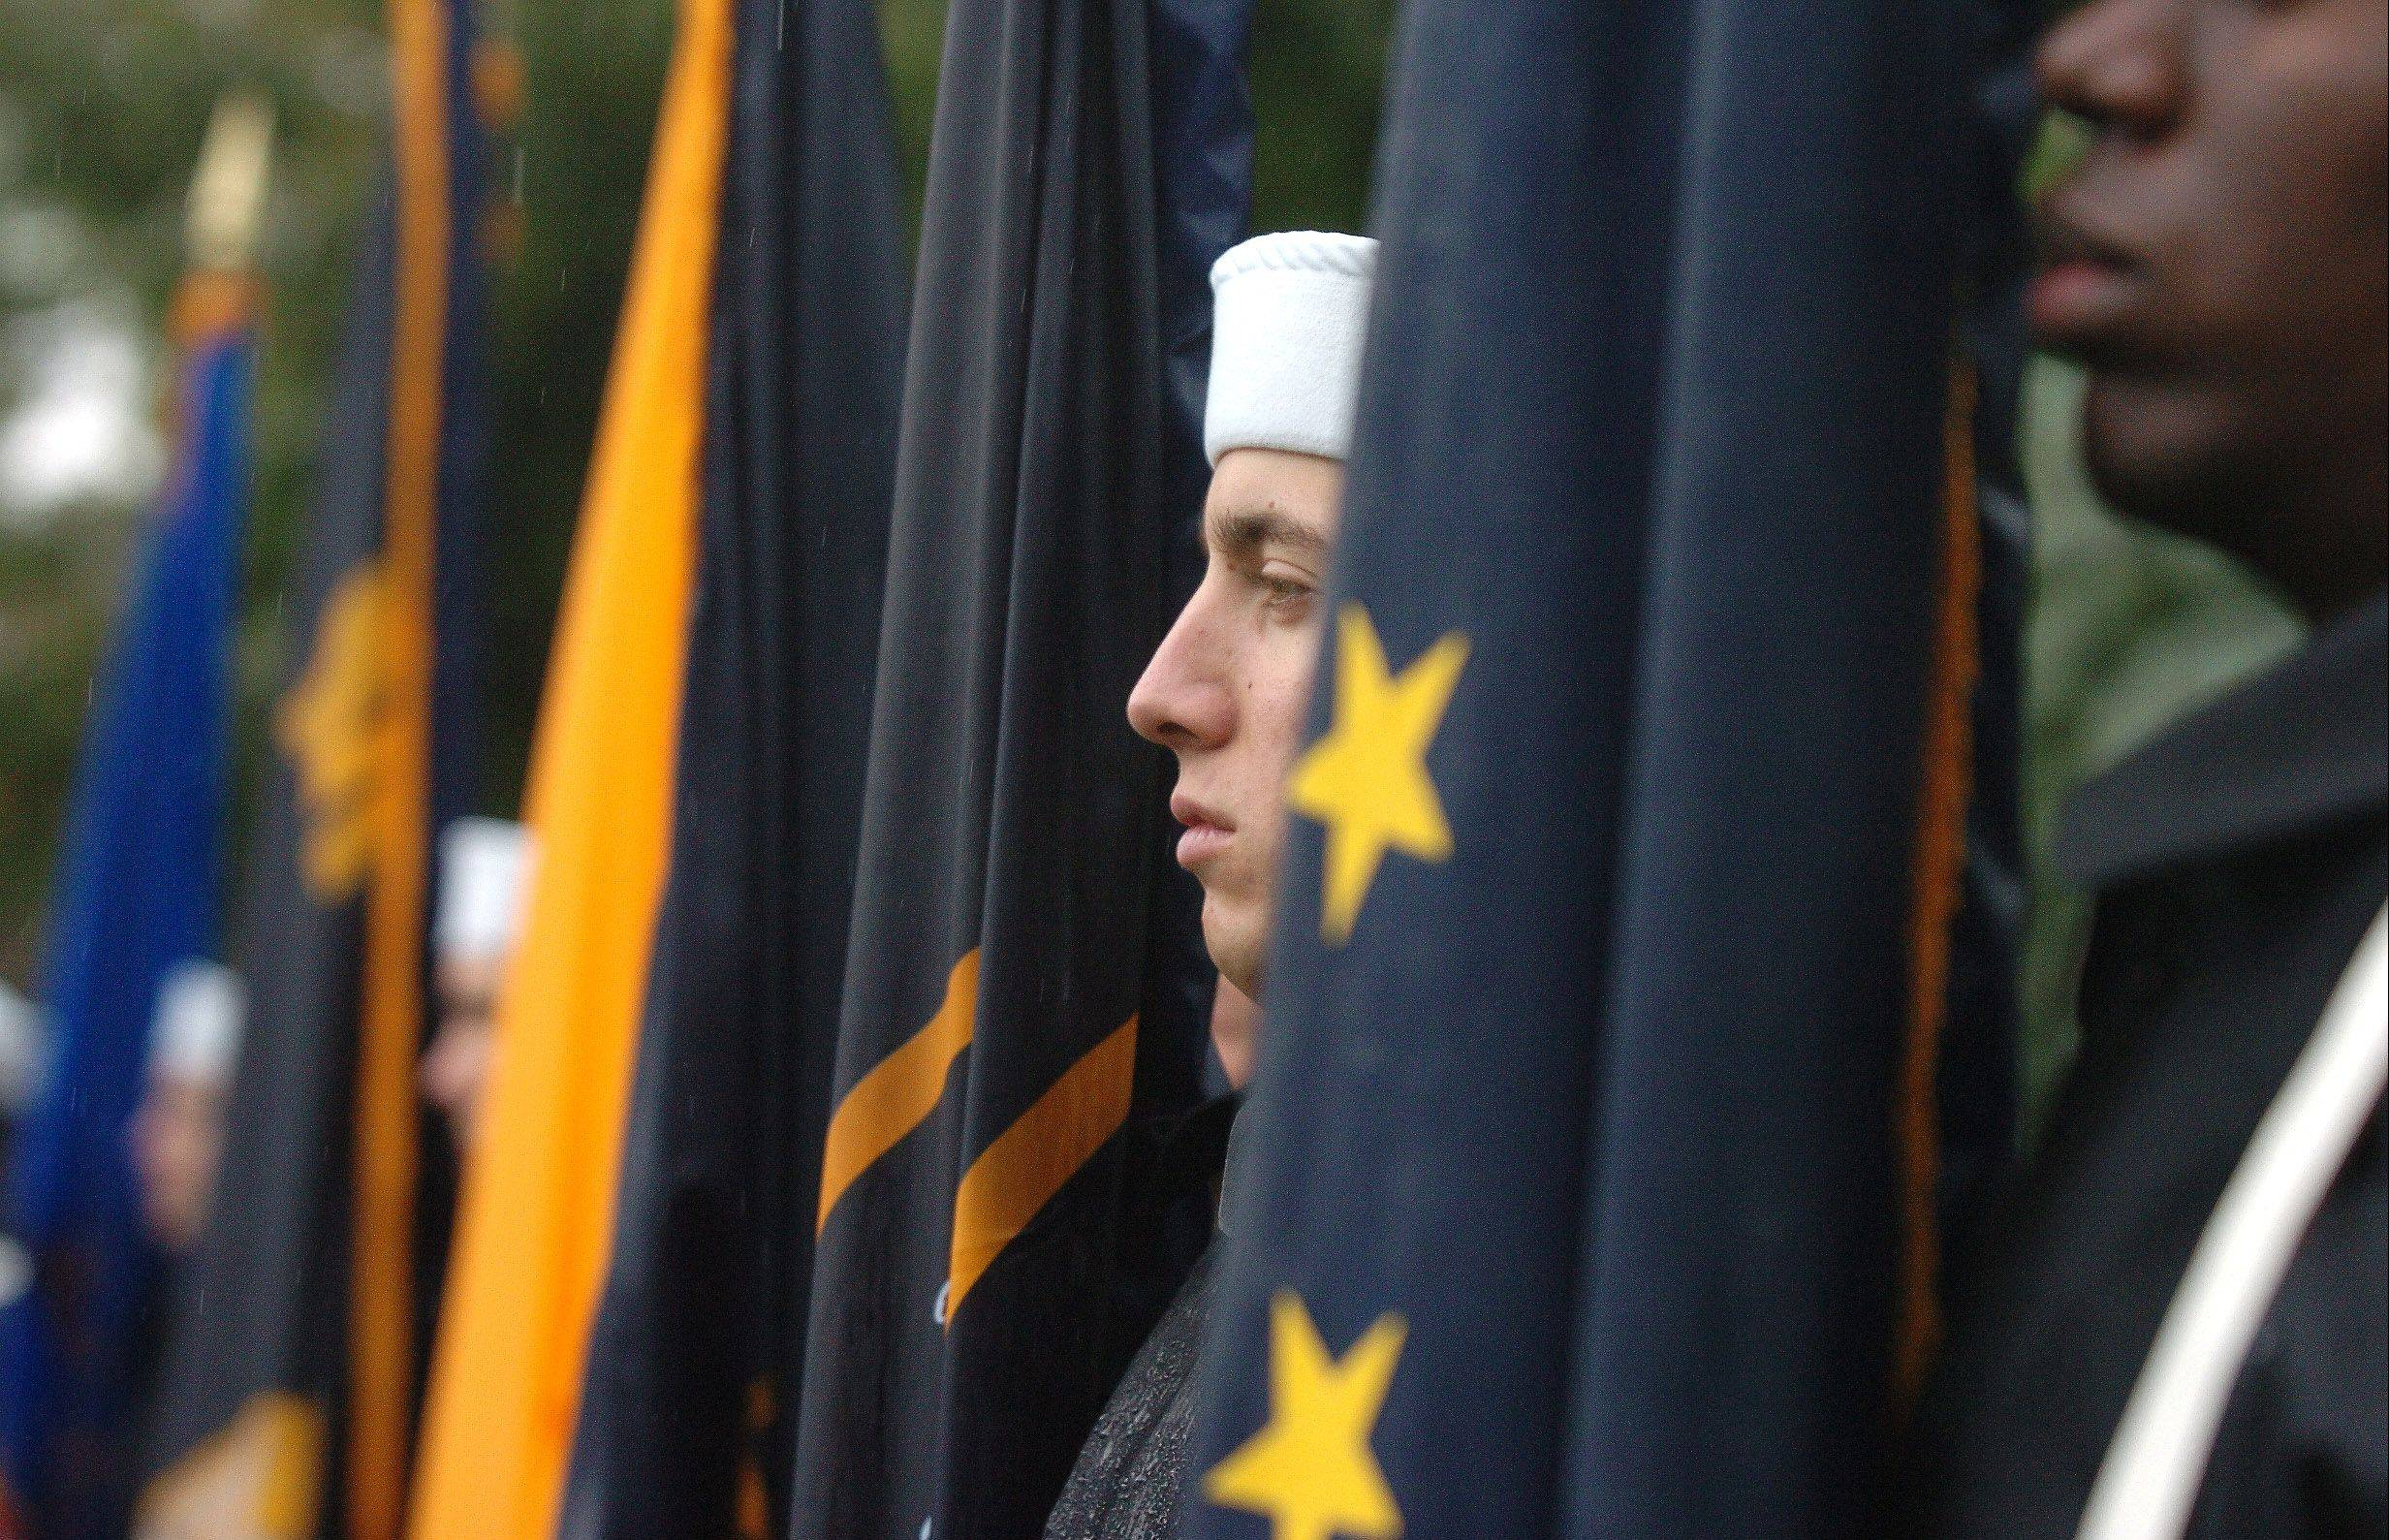 Great Lakes Naval Station color guard members participate in a Sept. 11 ceremony at Viking Park in Gurnee.